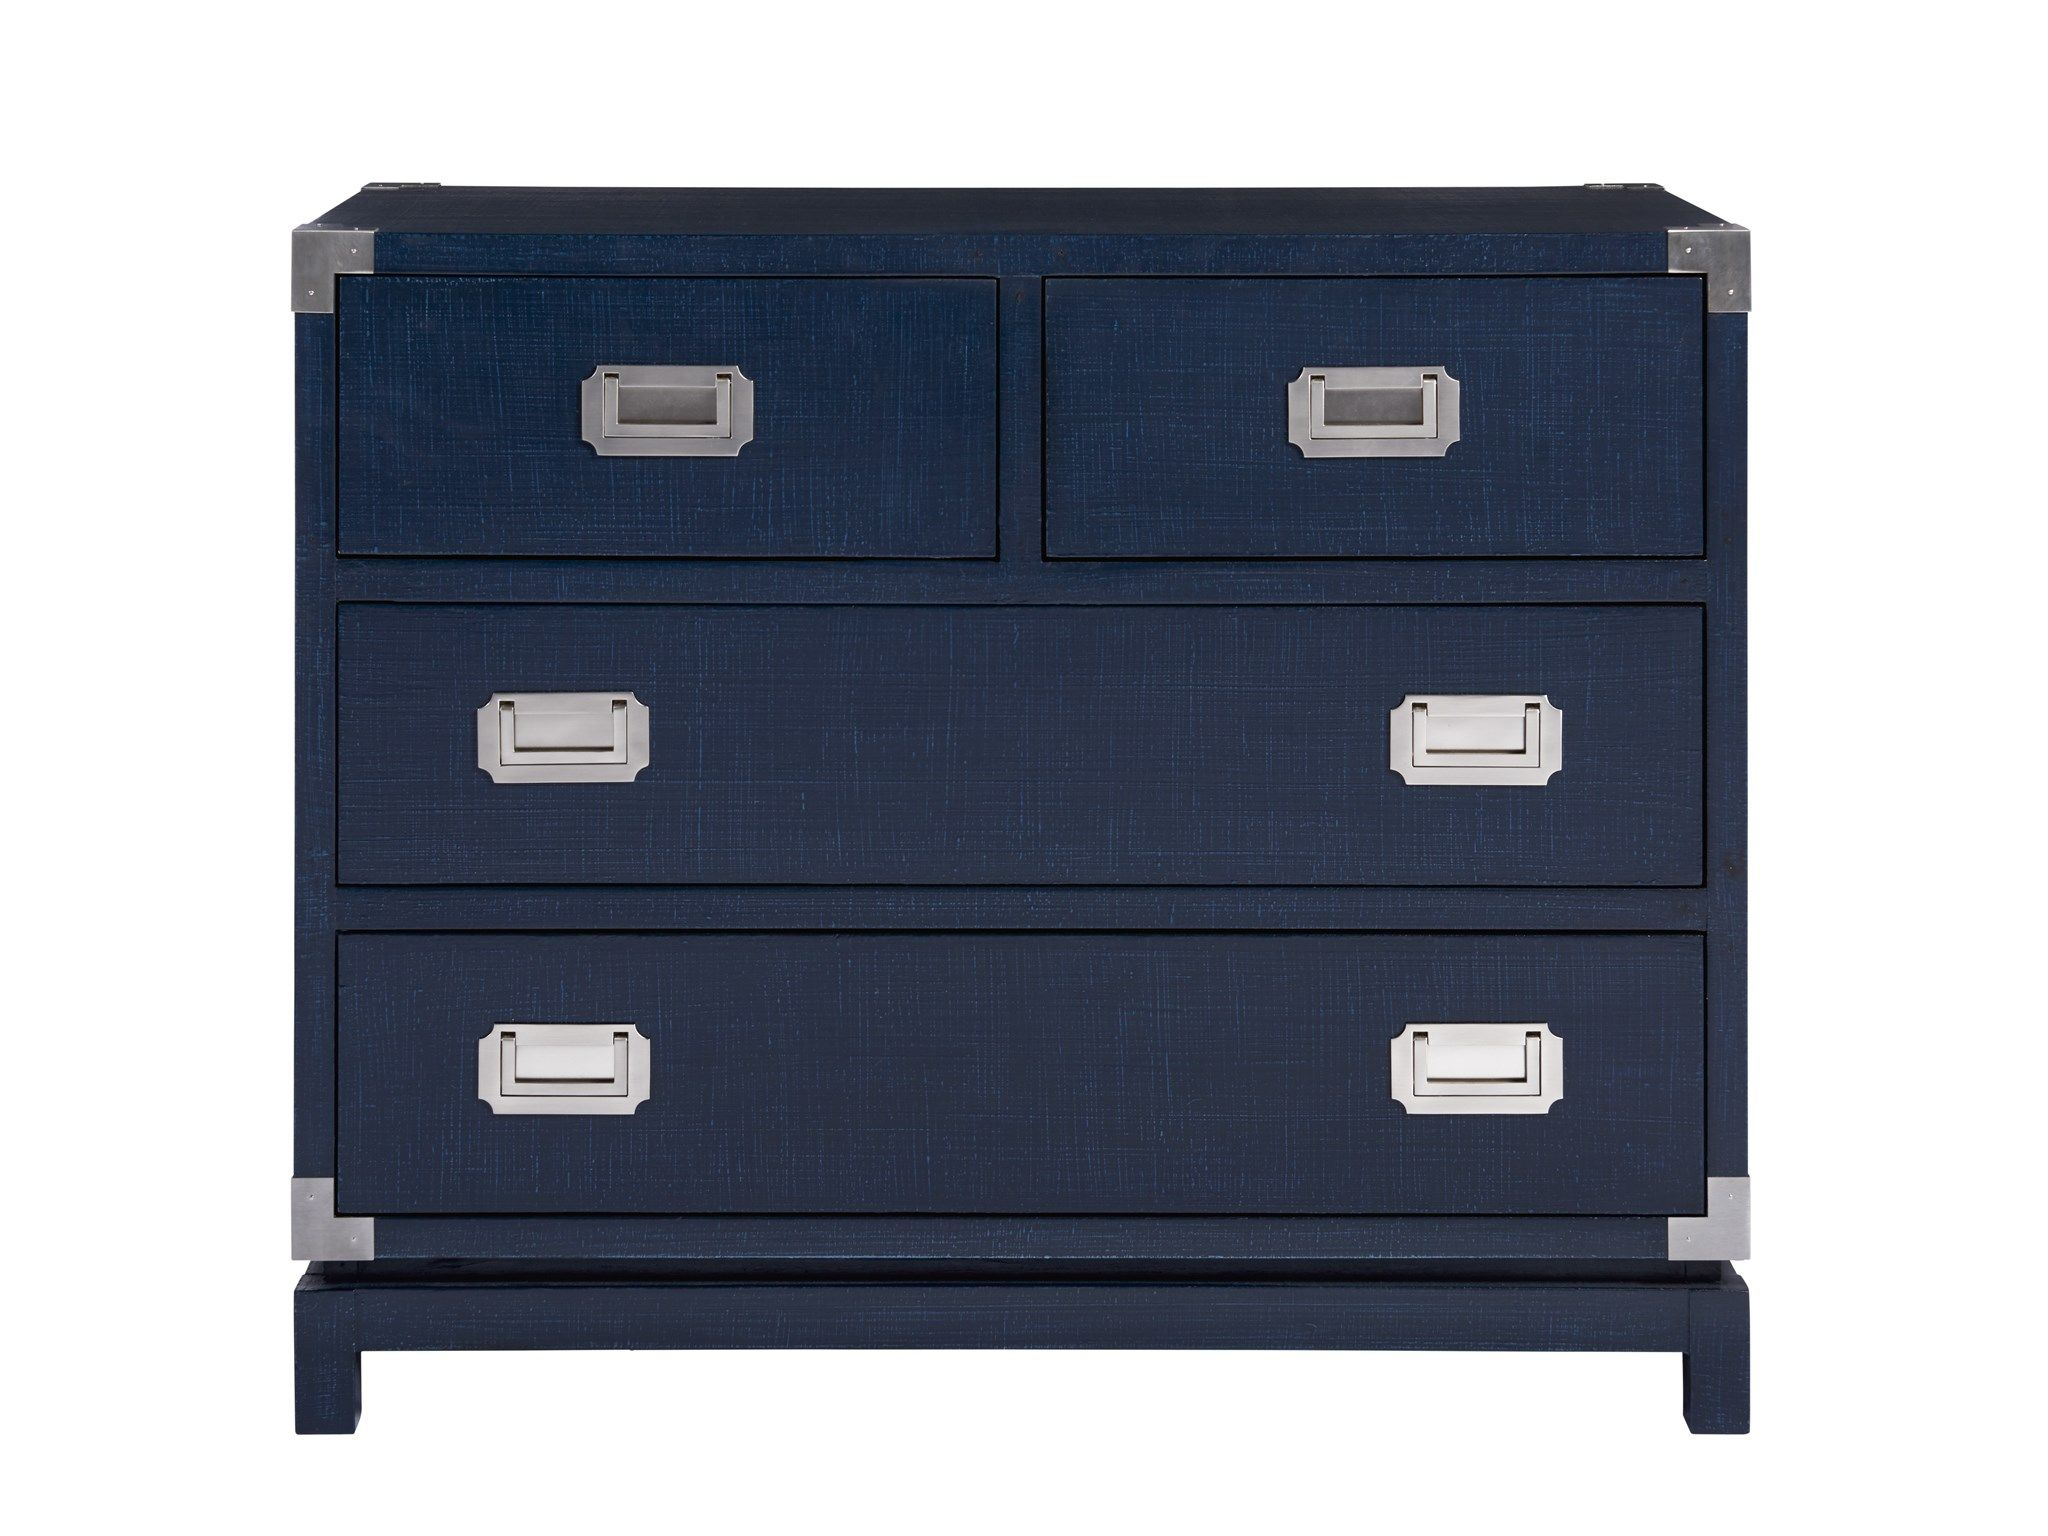 Universal Furniture Escape Coastal Living Home Collection Coastal Campaign Chest Universal Furniture Home Collections